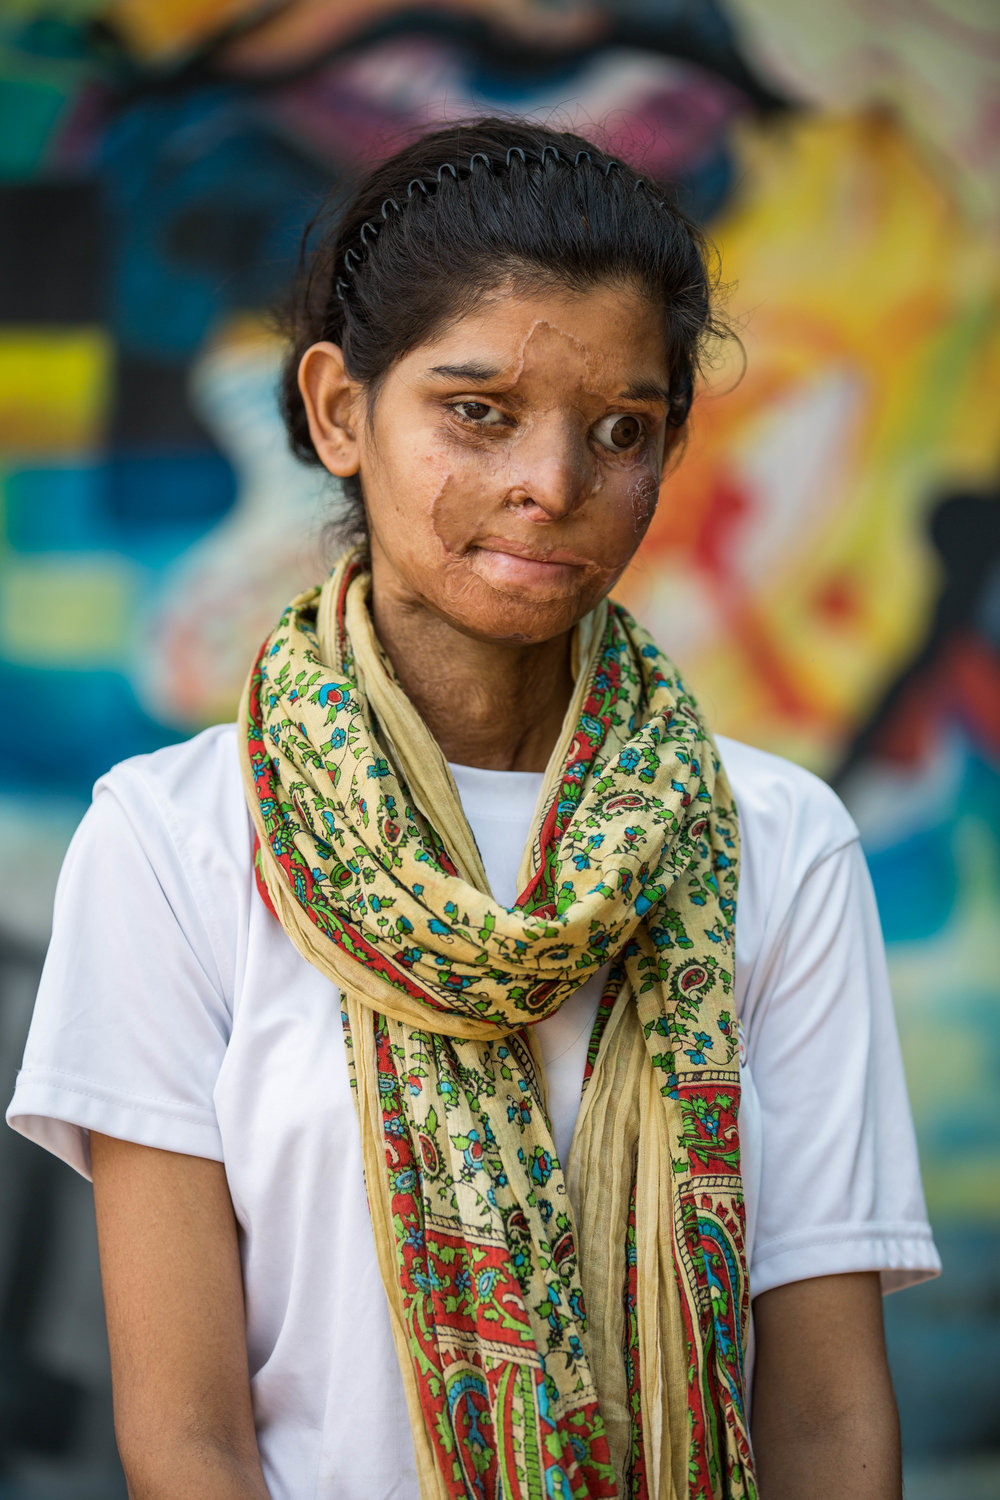 Ritu was 16 when her cousin threw acid on her. She lost her left eye, and her lips were melted together in the attack. She had been a star volleyball player, but because of vision issues after losing her eye, she can no longer play.